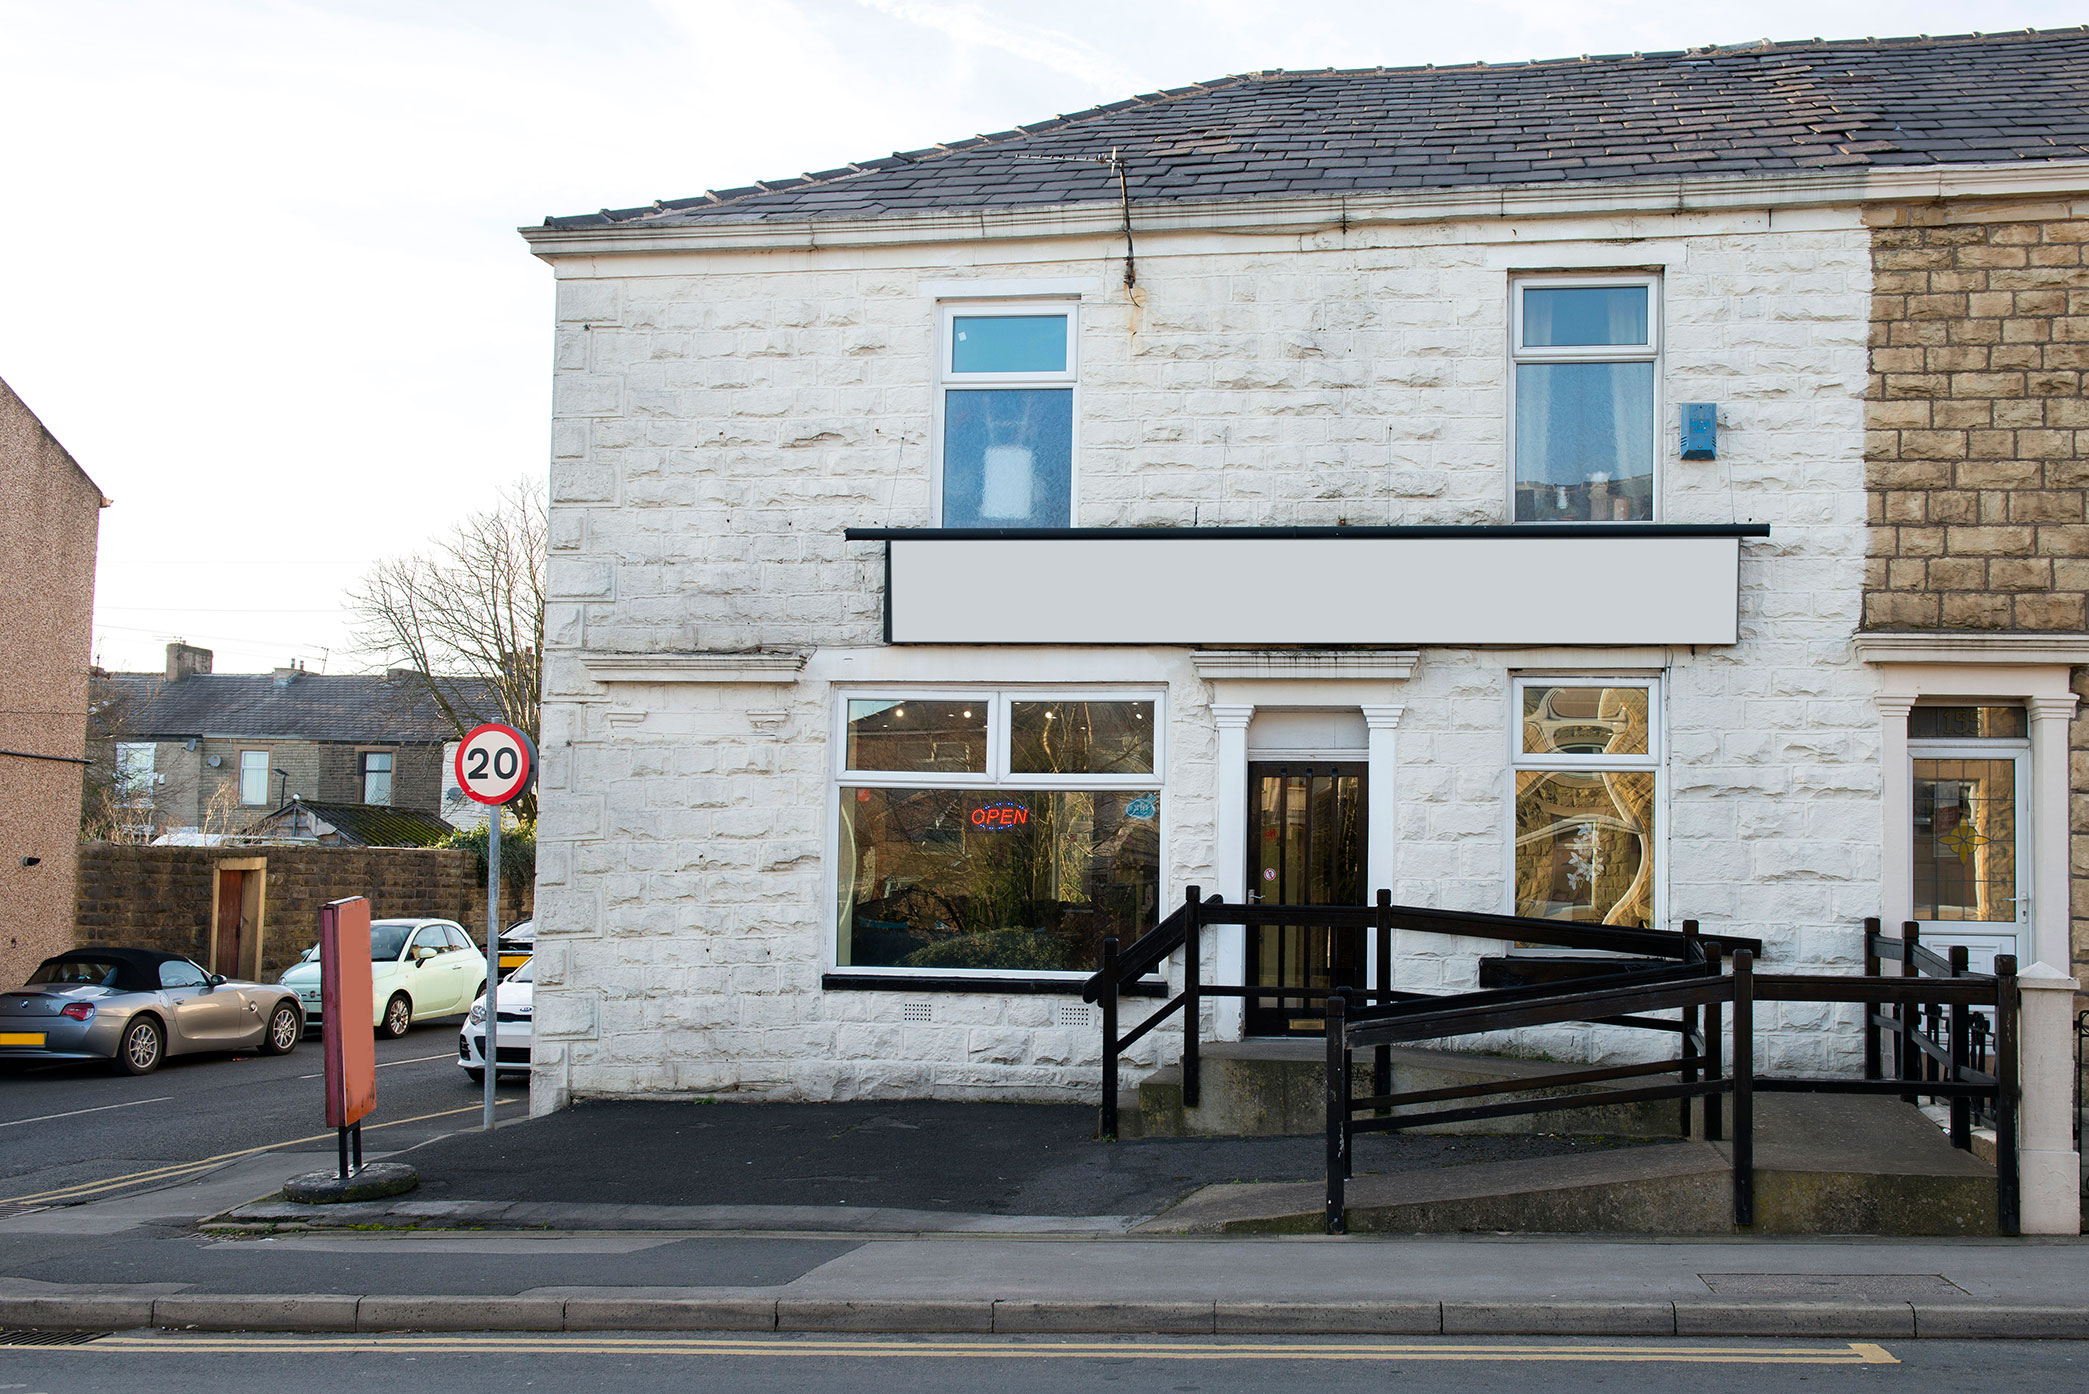 Mixed Use Commercial Premises close to Town Centre (East Lancashire)